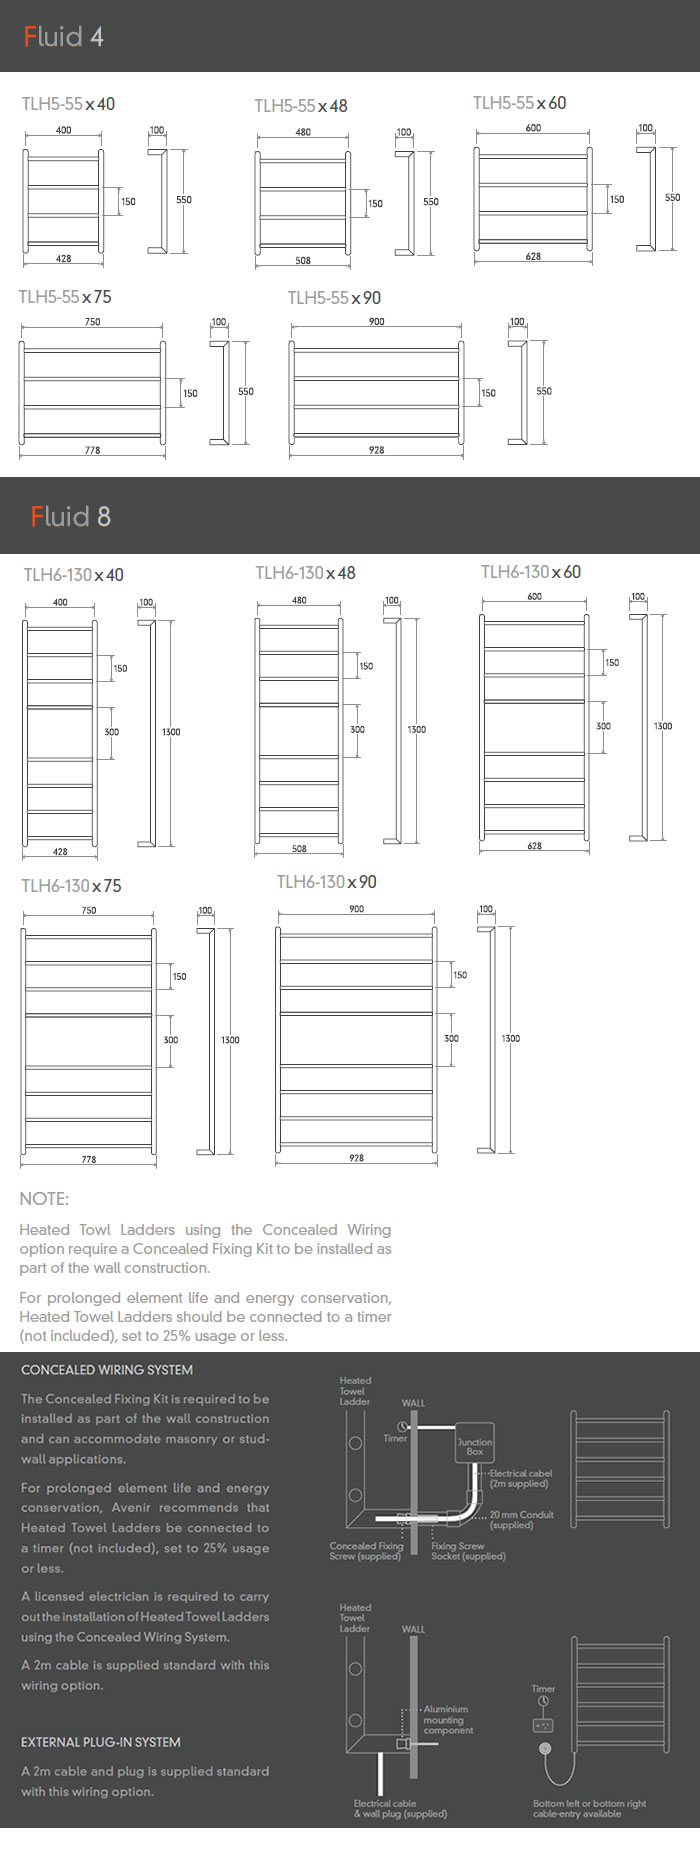 Avenir Fluid Heated Towel Ladder specifications